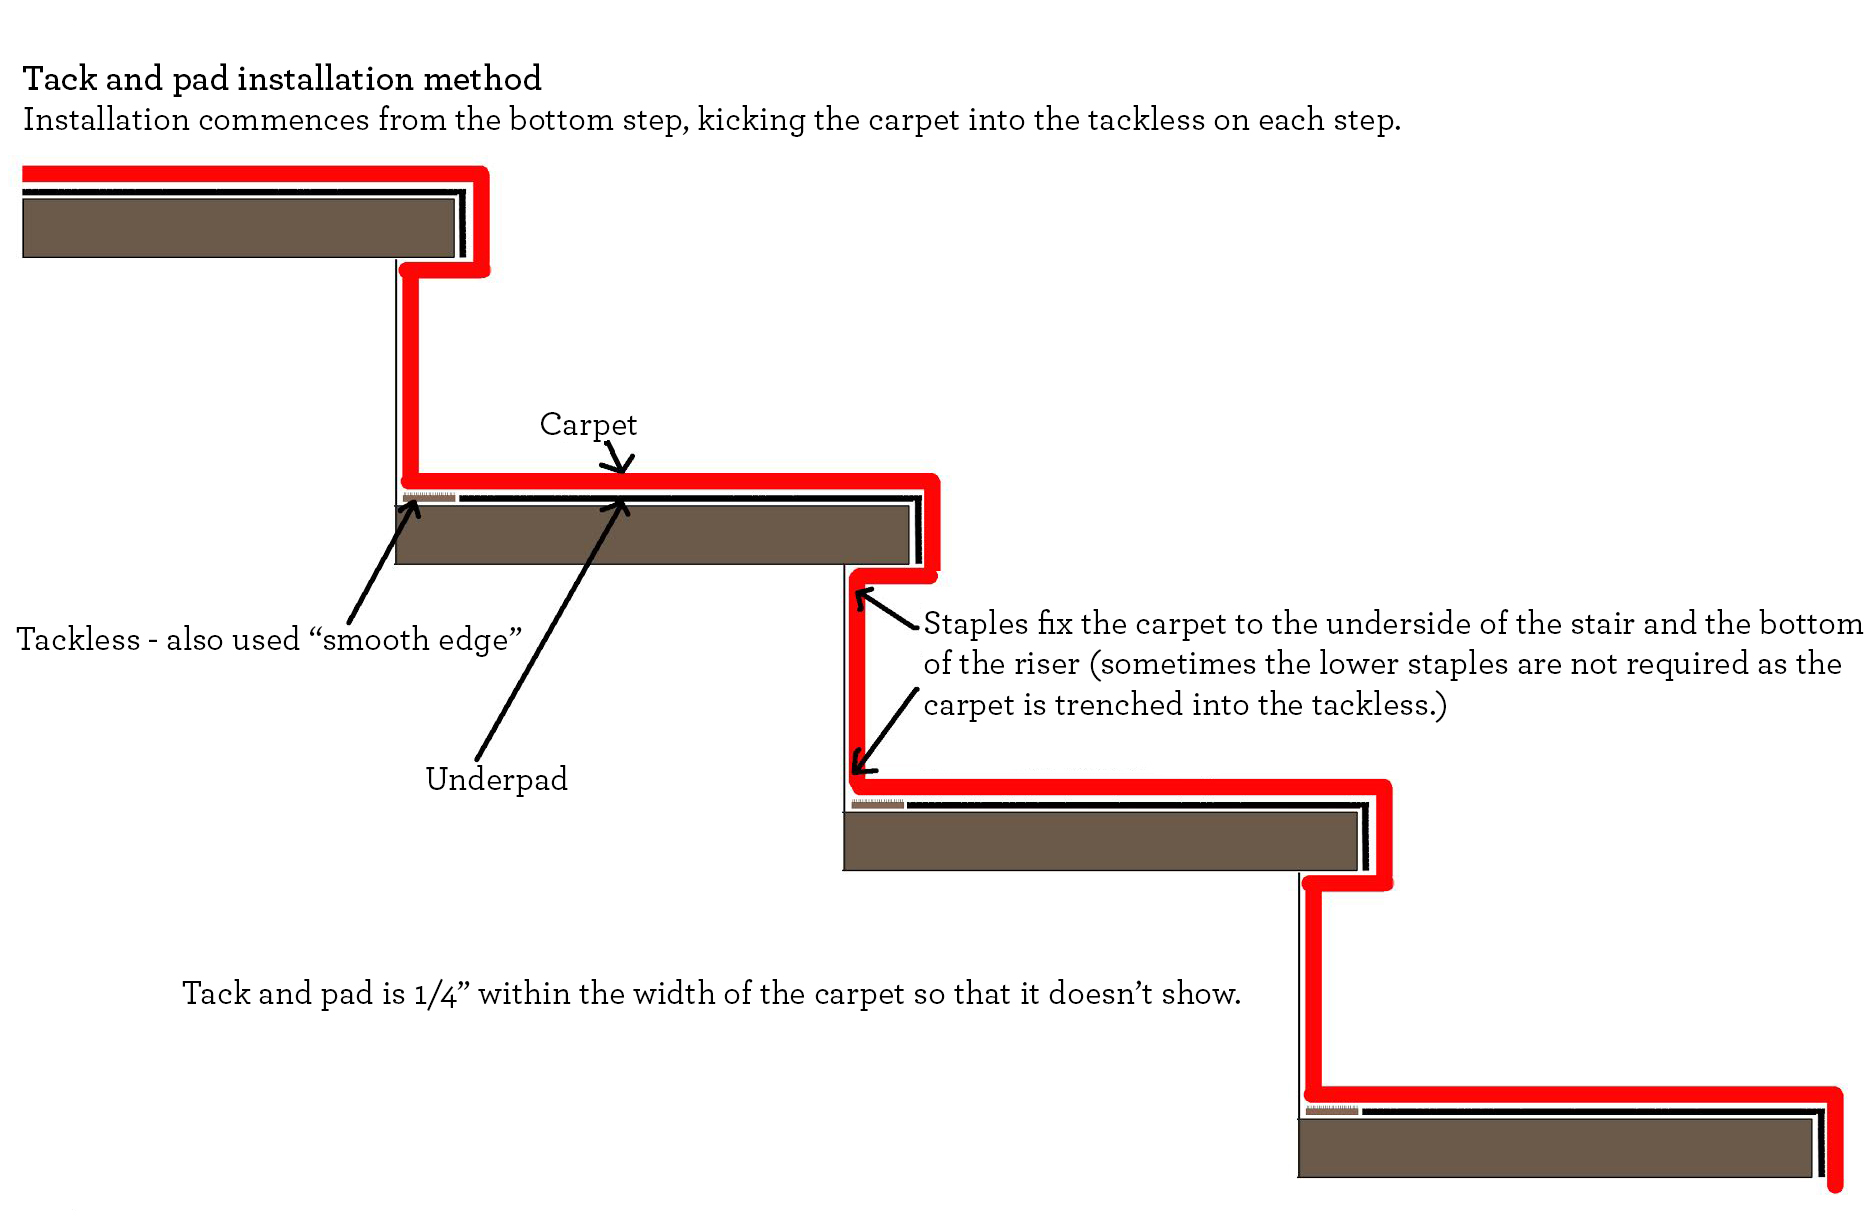 This diagram explains the tackless method of installation.